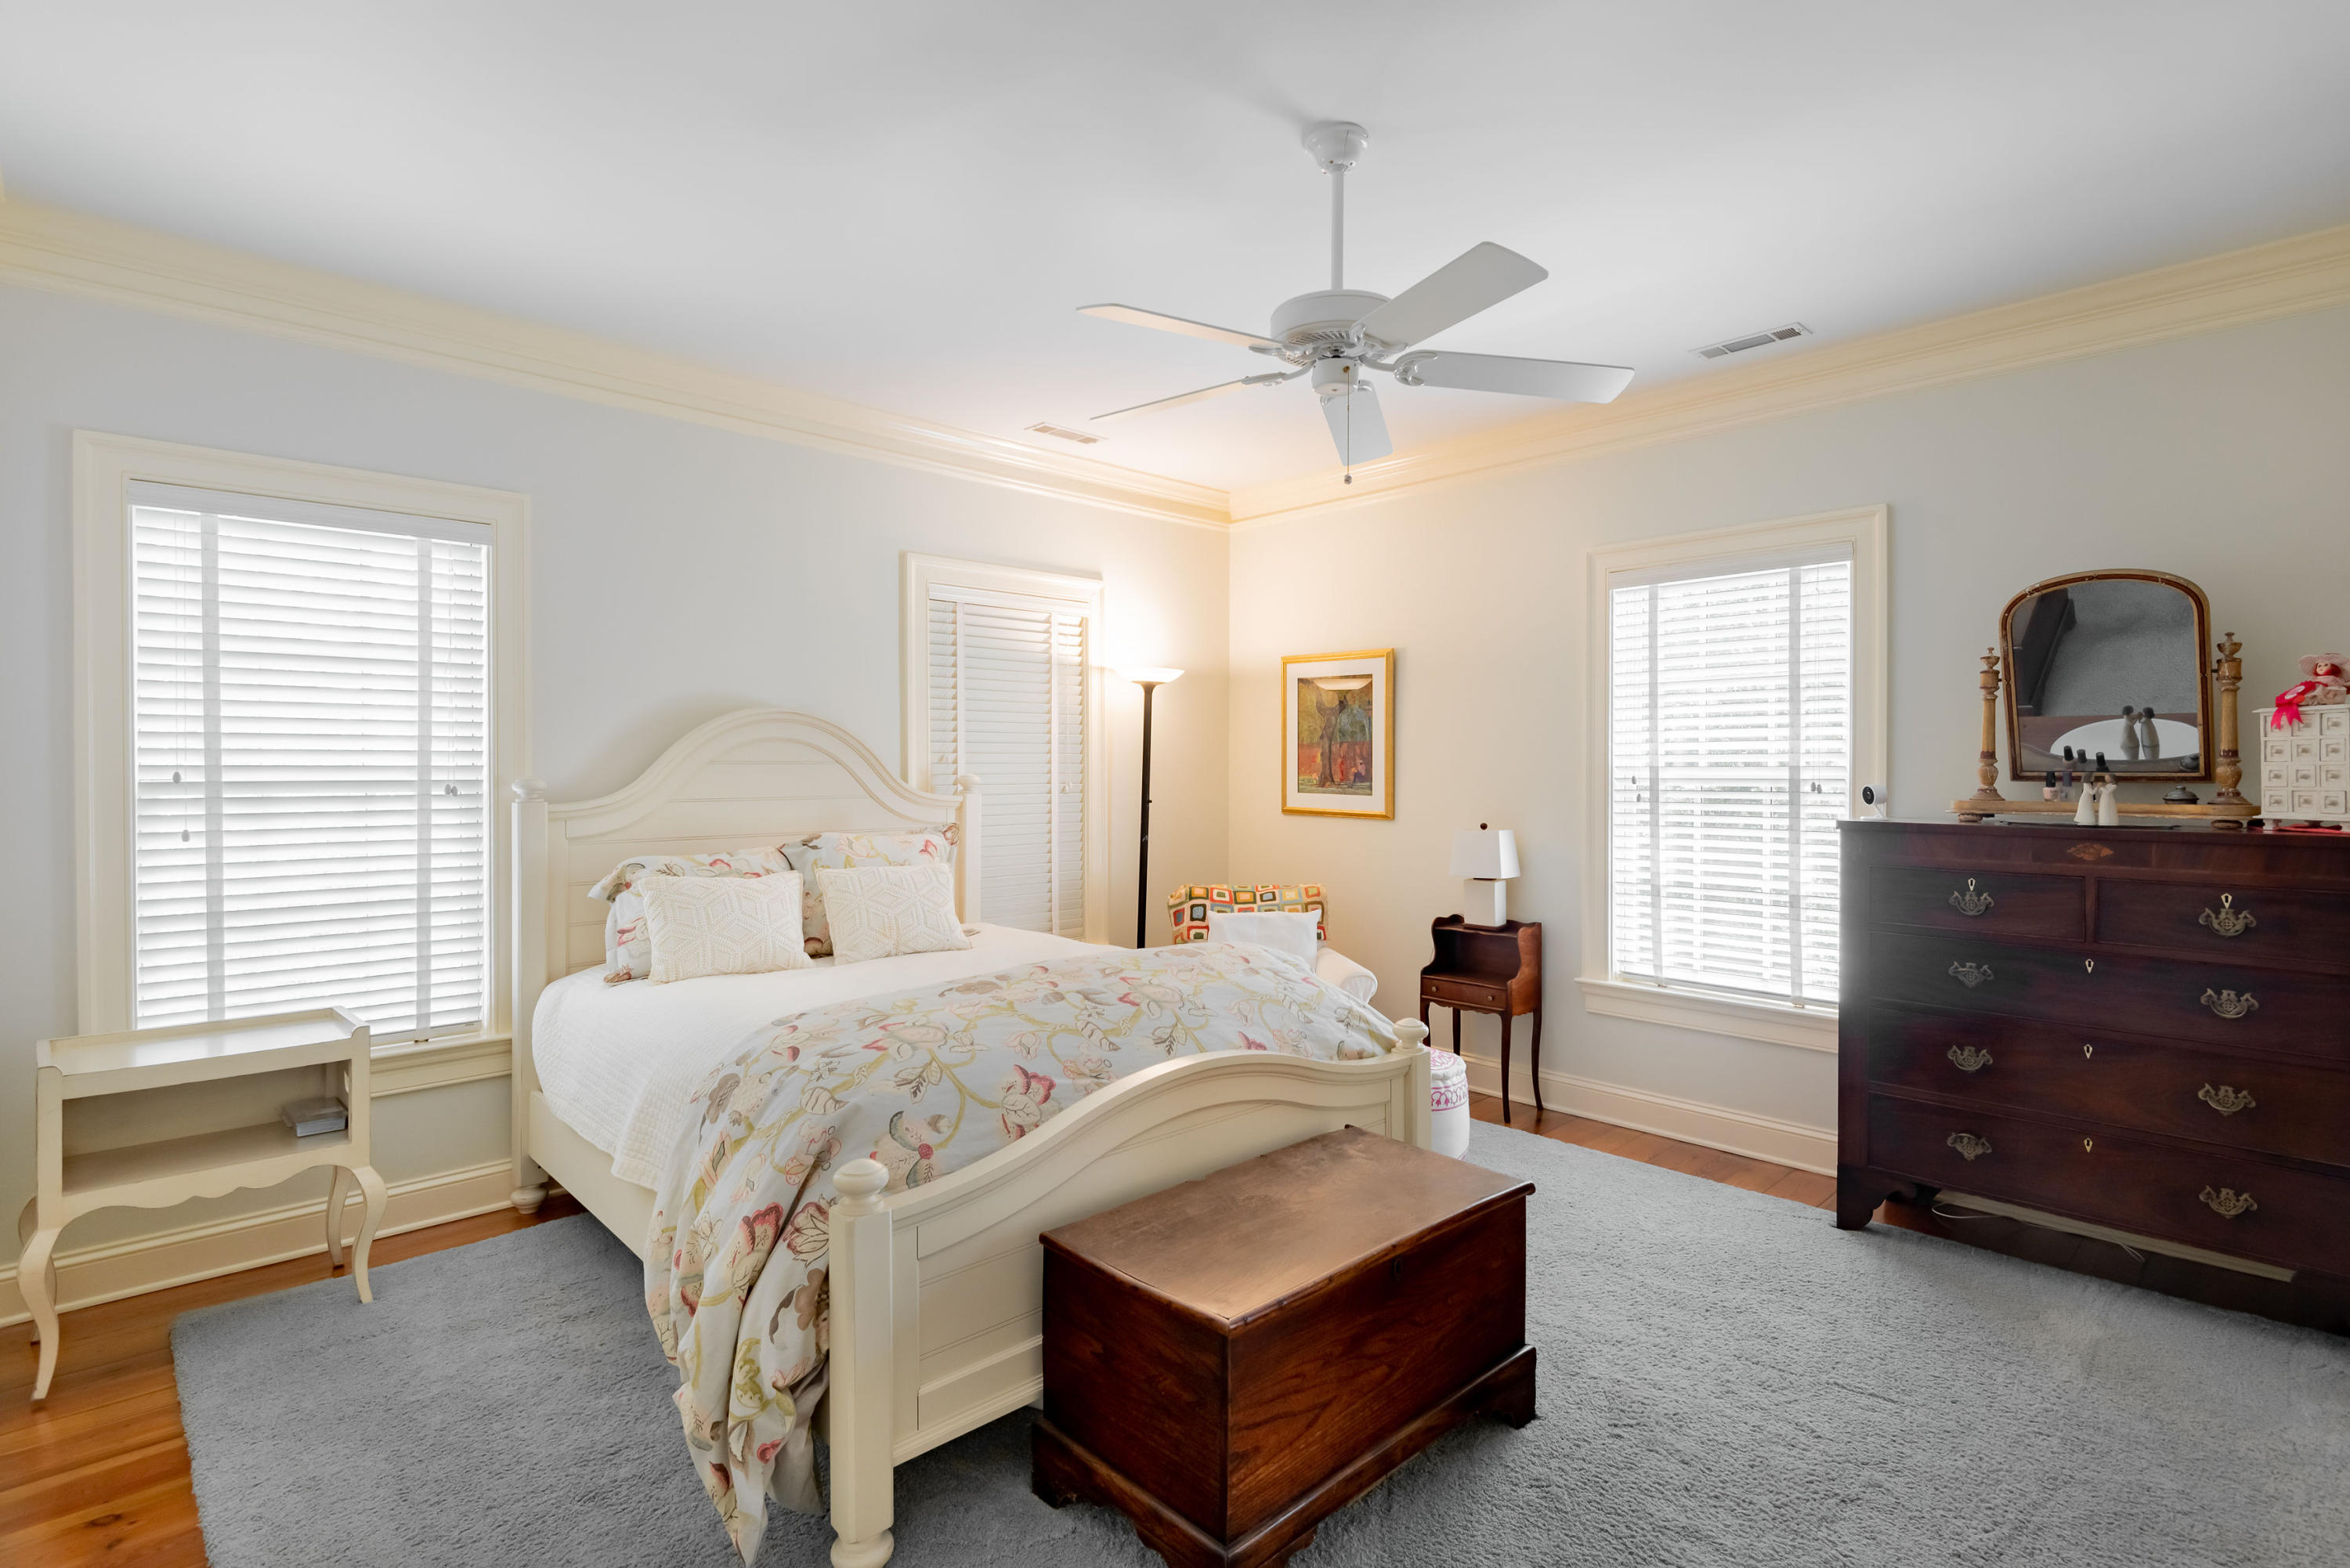 River Reach at Remley'S Point Homes For Sale - 124 Wando Reach, Mount Pleasant, SC - 17